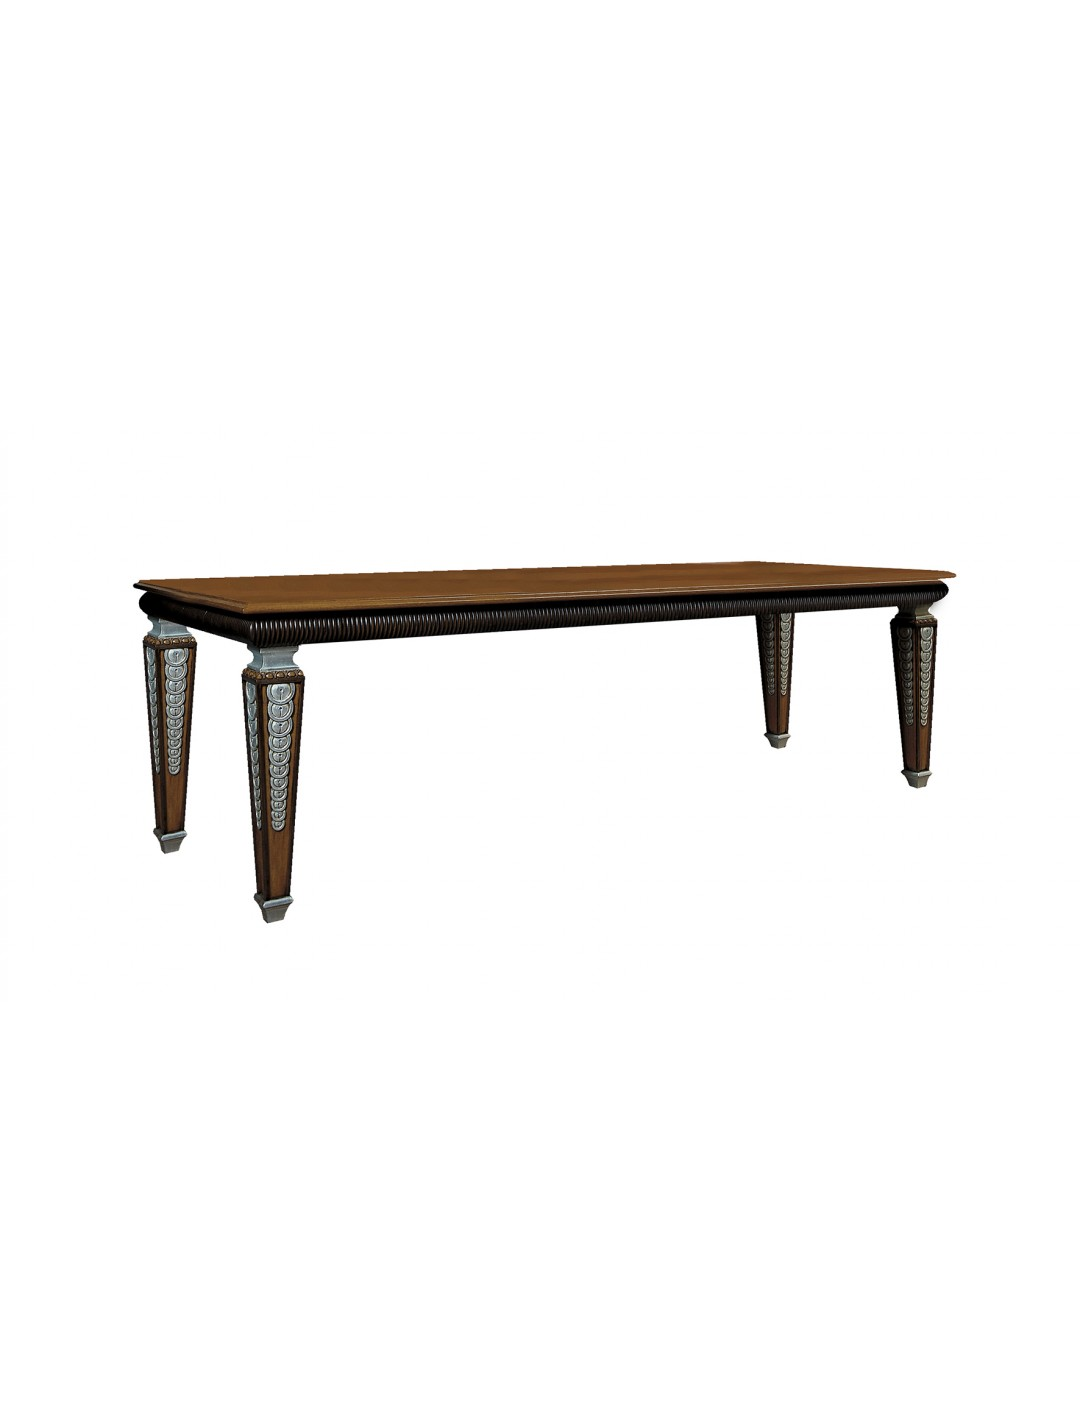 DECO DINING TABLE WITH LEGSN (250X110 CM)